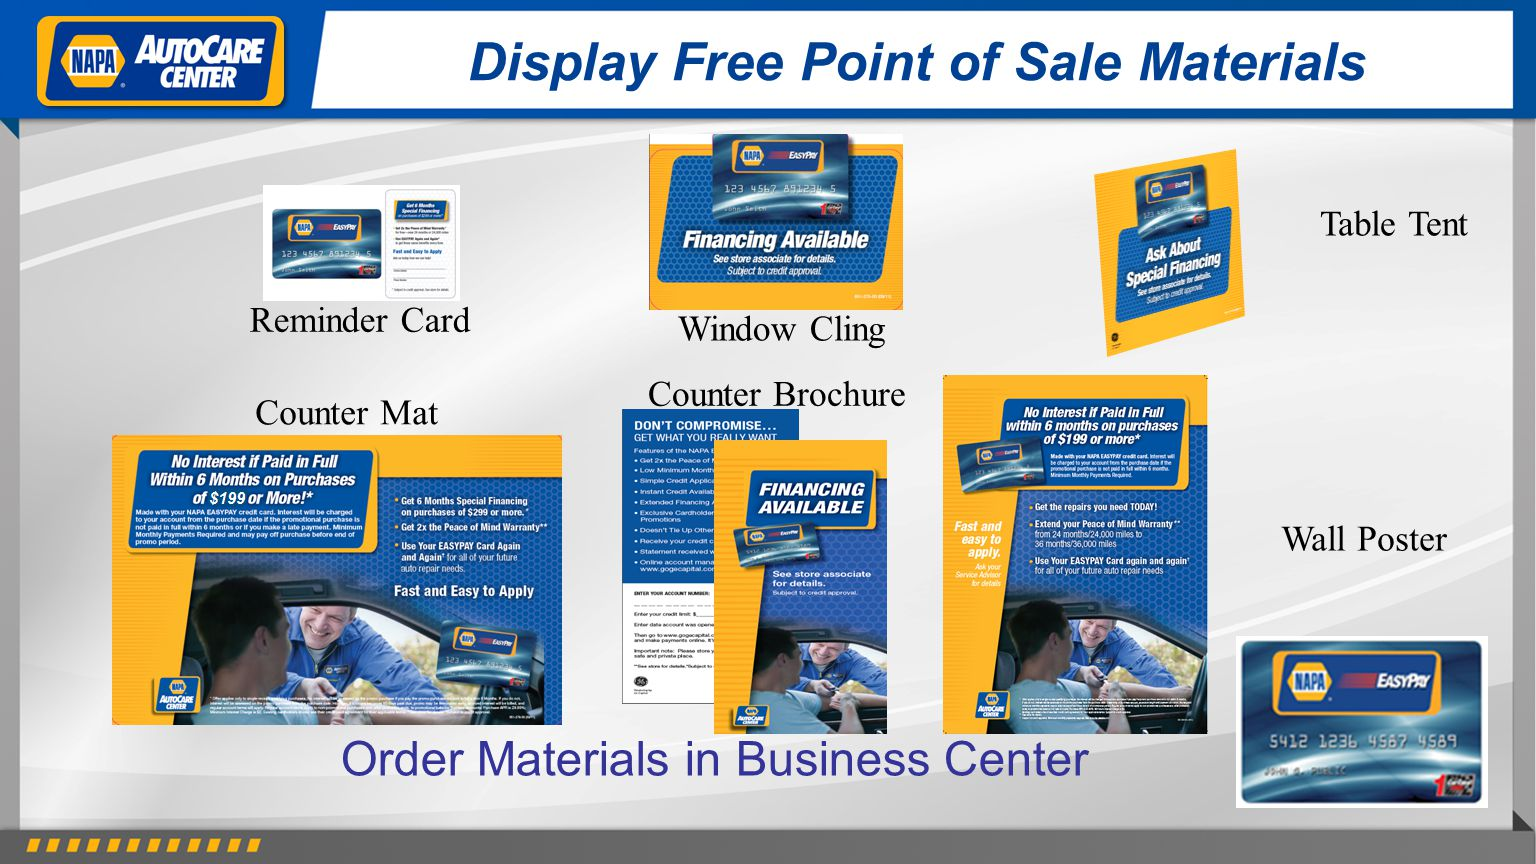 Display Free Point of Sale Materials